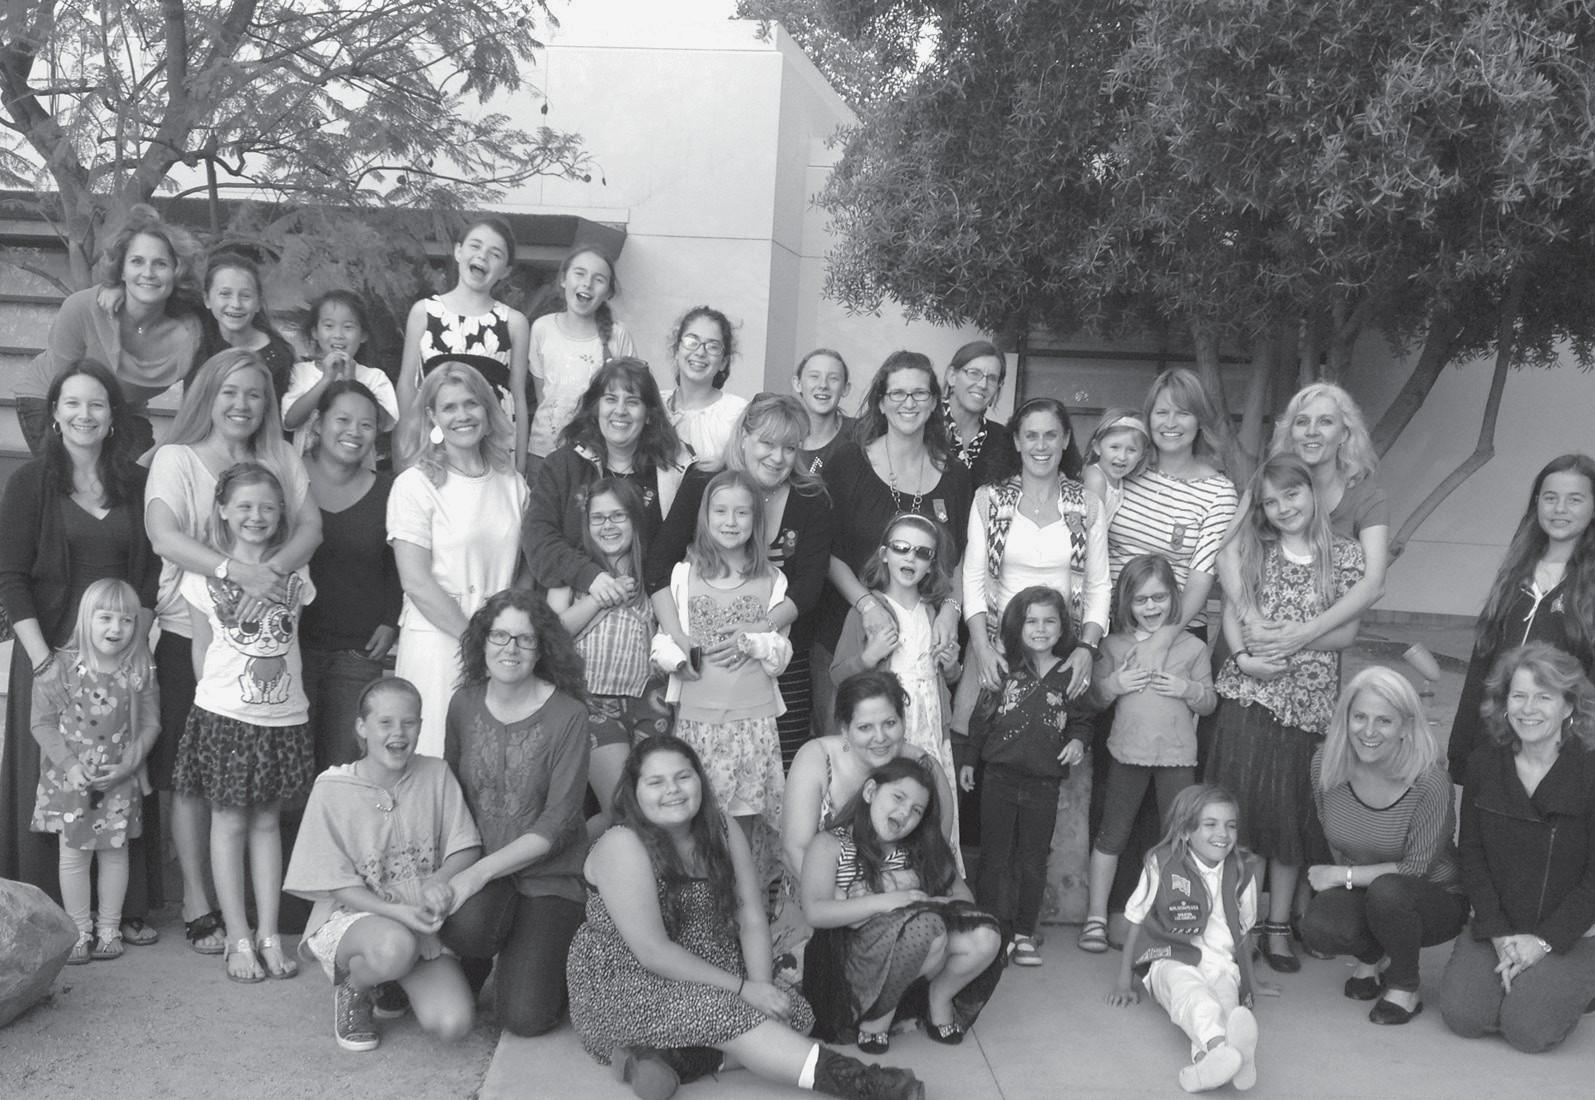 GIRLS' DAY OUT—Girl Scouts celebrate Mother's Day with a leader/daughter twilight tea at the Westlake Village Civic Center. The Girl Scouts of Greater Los Angeles Las Virgenes Service Unit, which welcomes girls from Agoura Hills and Westlake Village in grades K through 12, will host membership recruitment night at 5:30 to 7:30 p.m. on May 28 at the Westlake Village Community Room, next to the library. The group is also seeking volunteers for the program. For more information, contact Susy Gomez at SGomez@girlscoutsla.org.